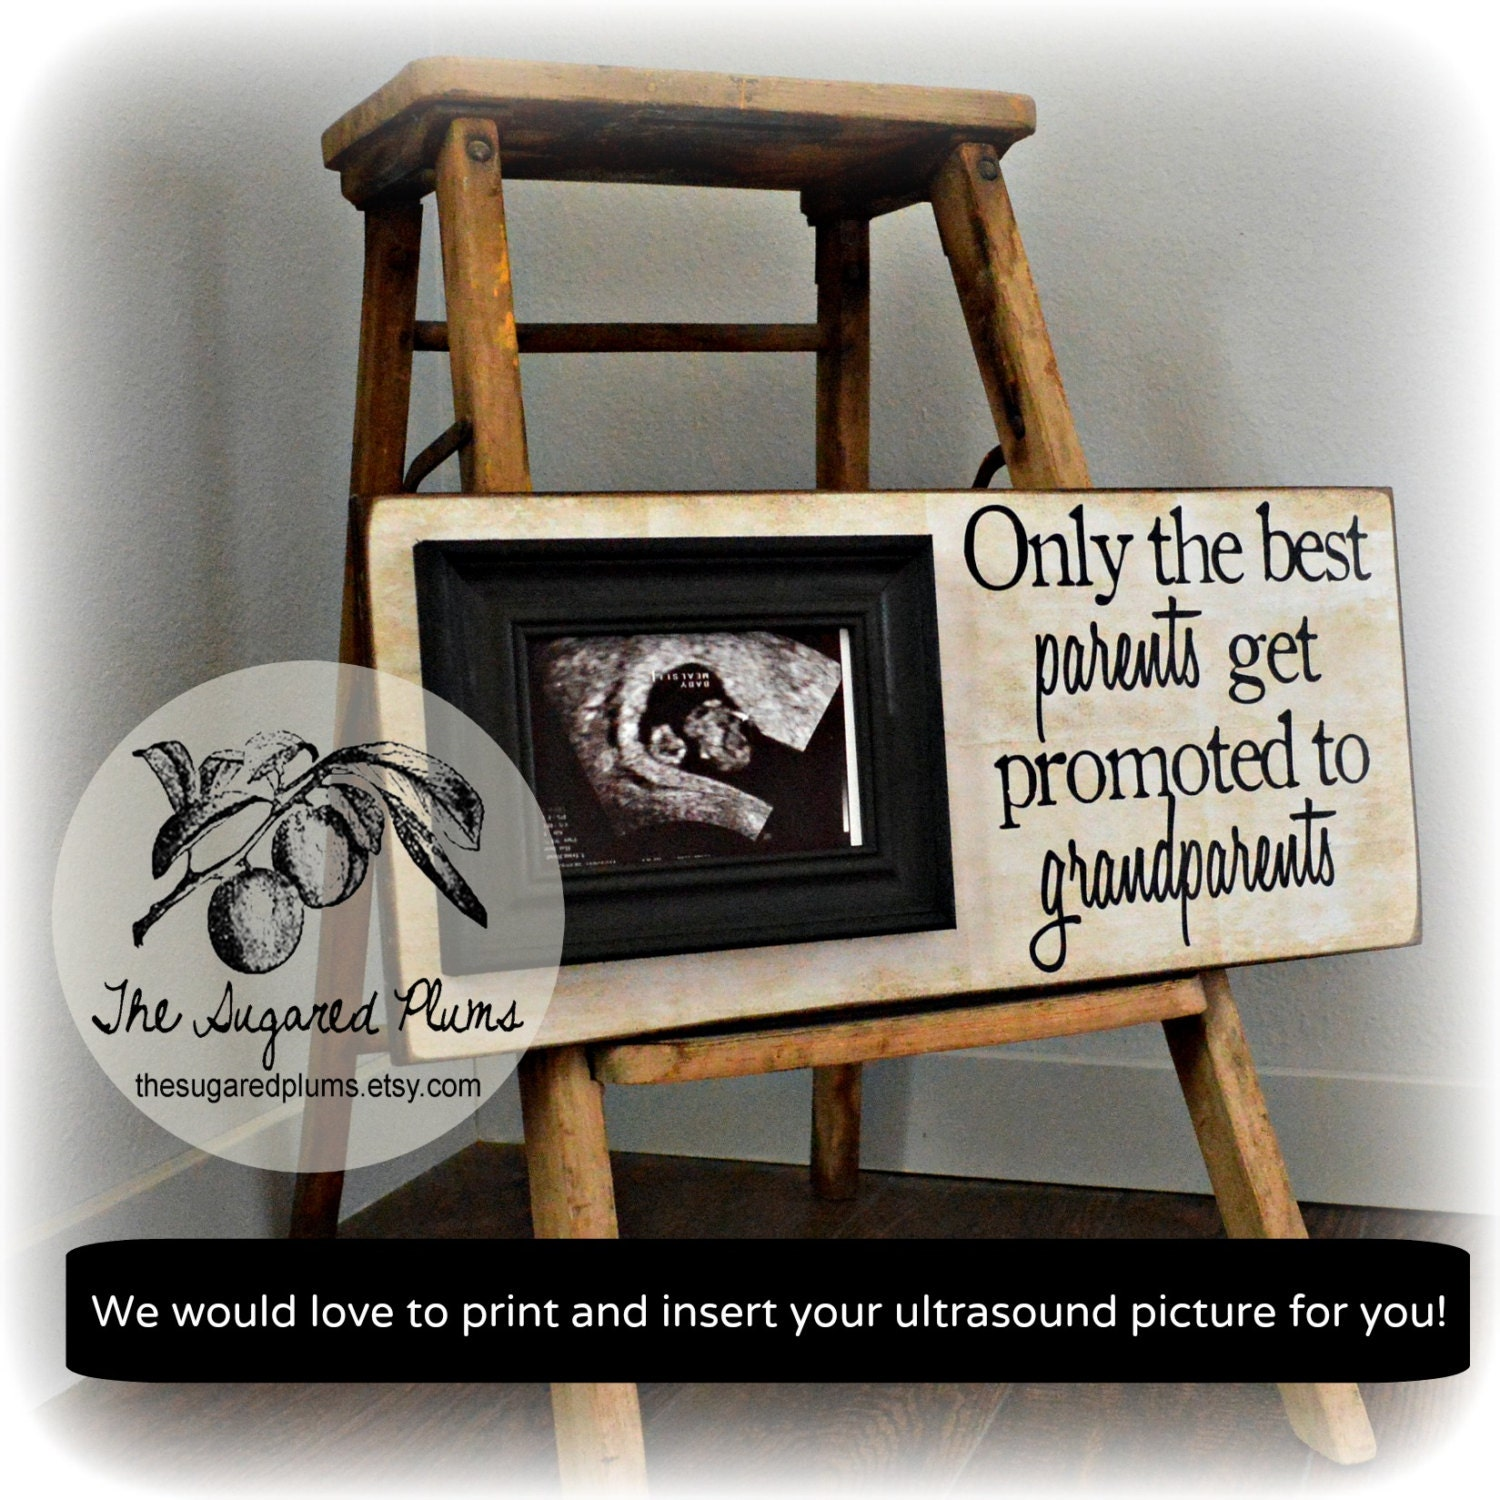 Pregnancy expecting announcement for grandparents ultrasound gift pregnancy expecting announcement for grandparents ultrasound gift picture frame grandparents gift expecting baby 8x20 the sugared plums from negle Images